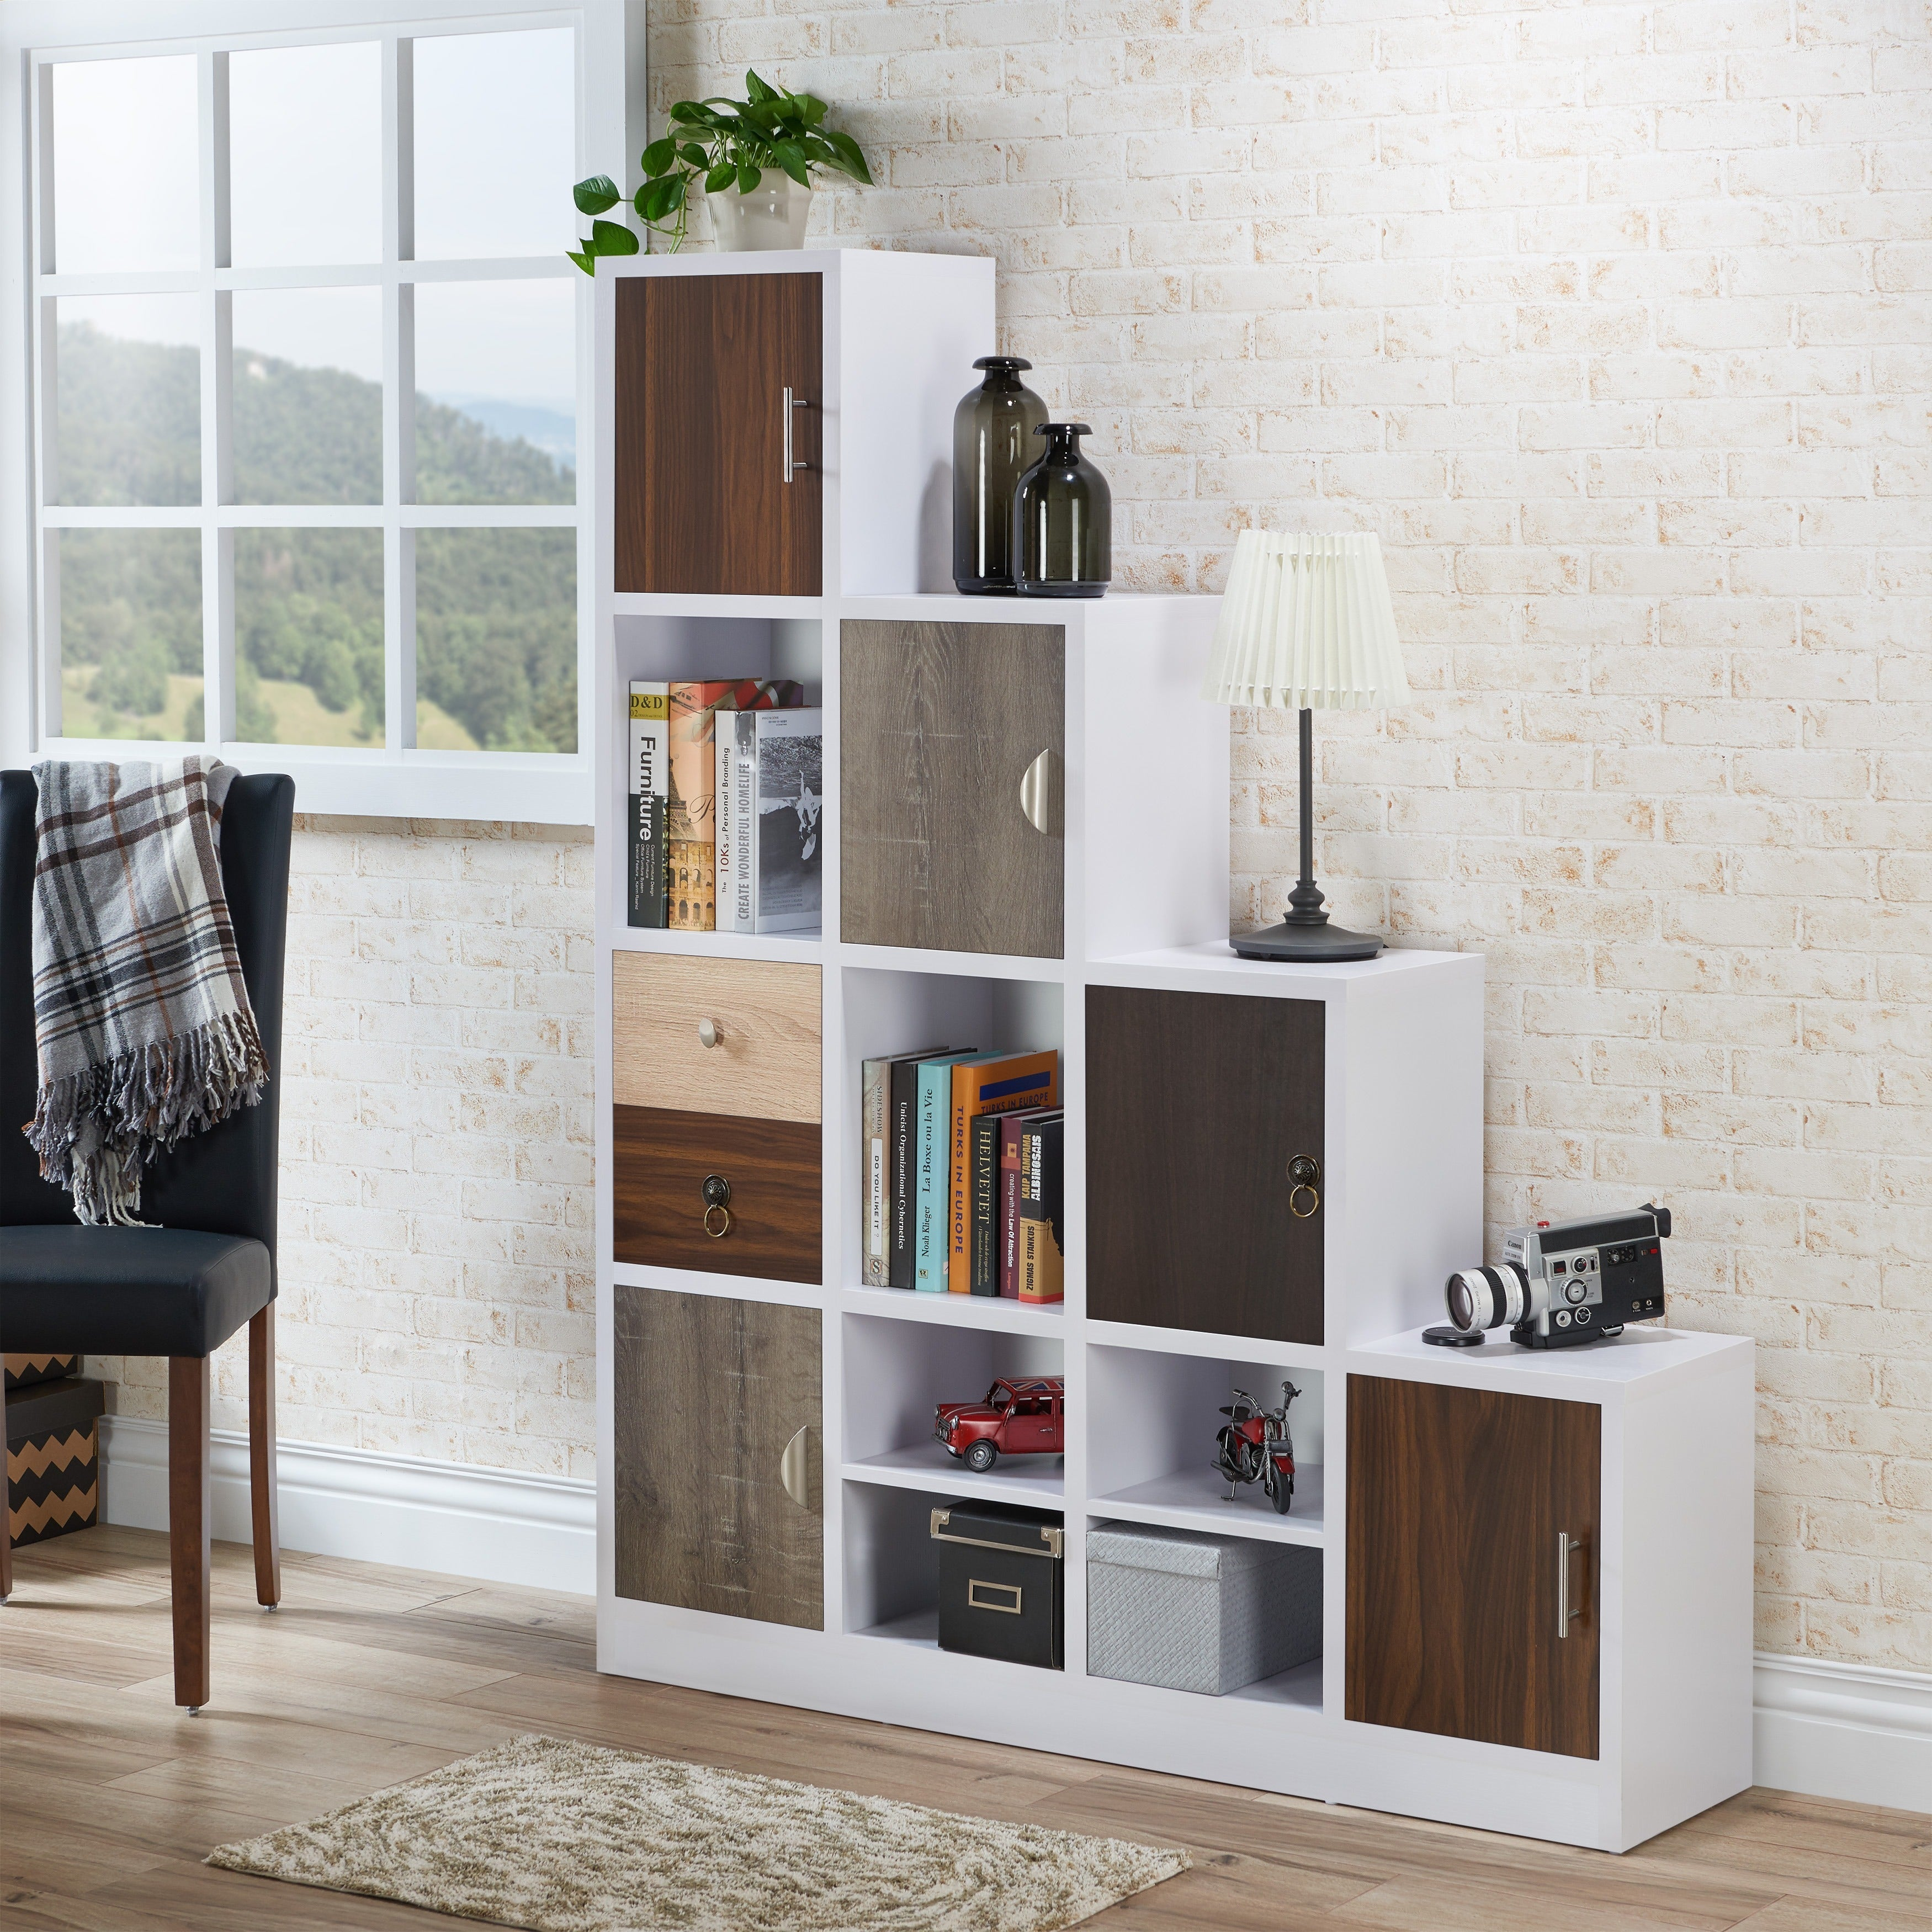 Buy Bookshelves Bookcases Online At Overstock Com Our Best